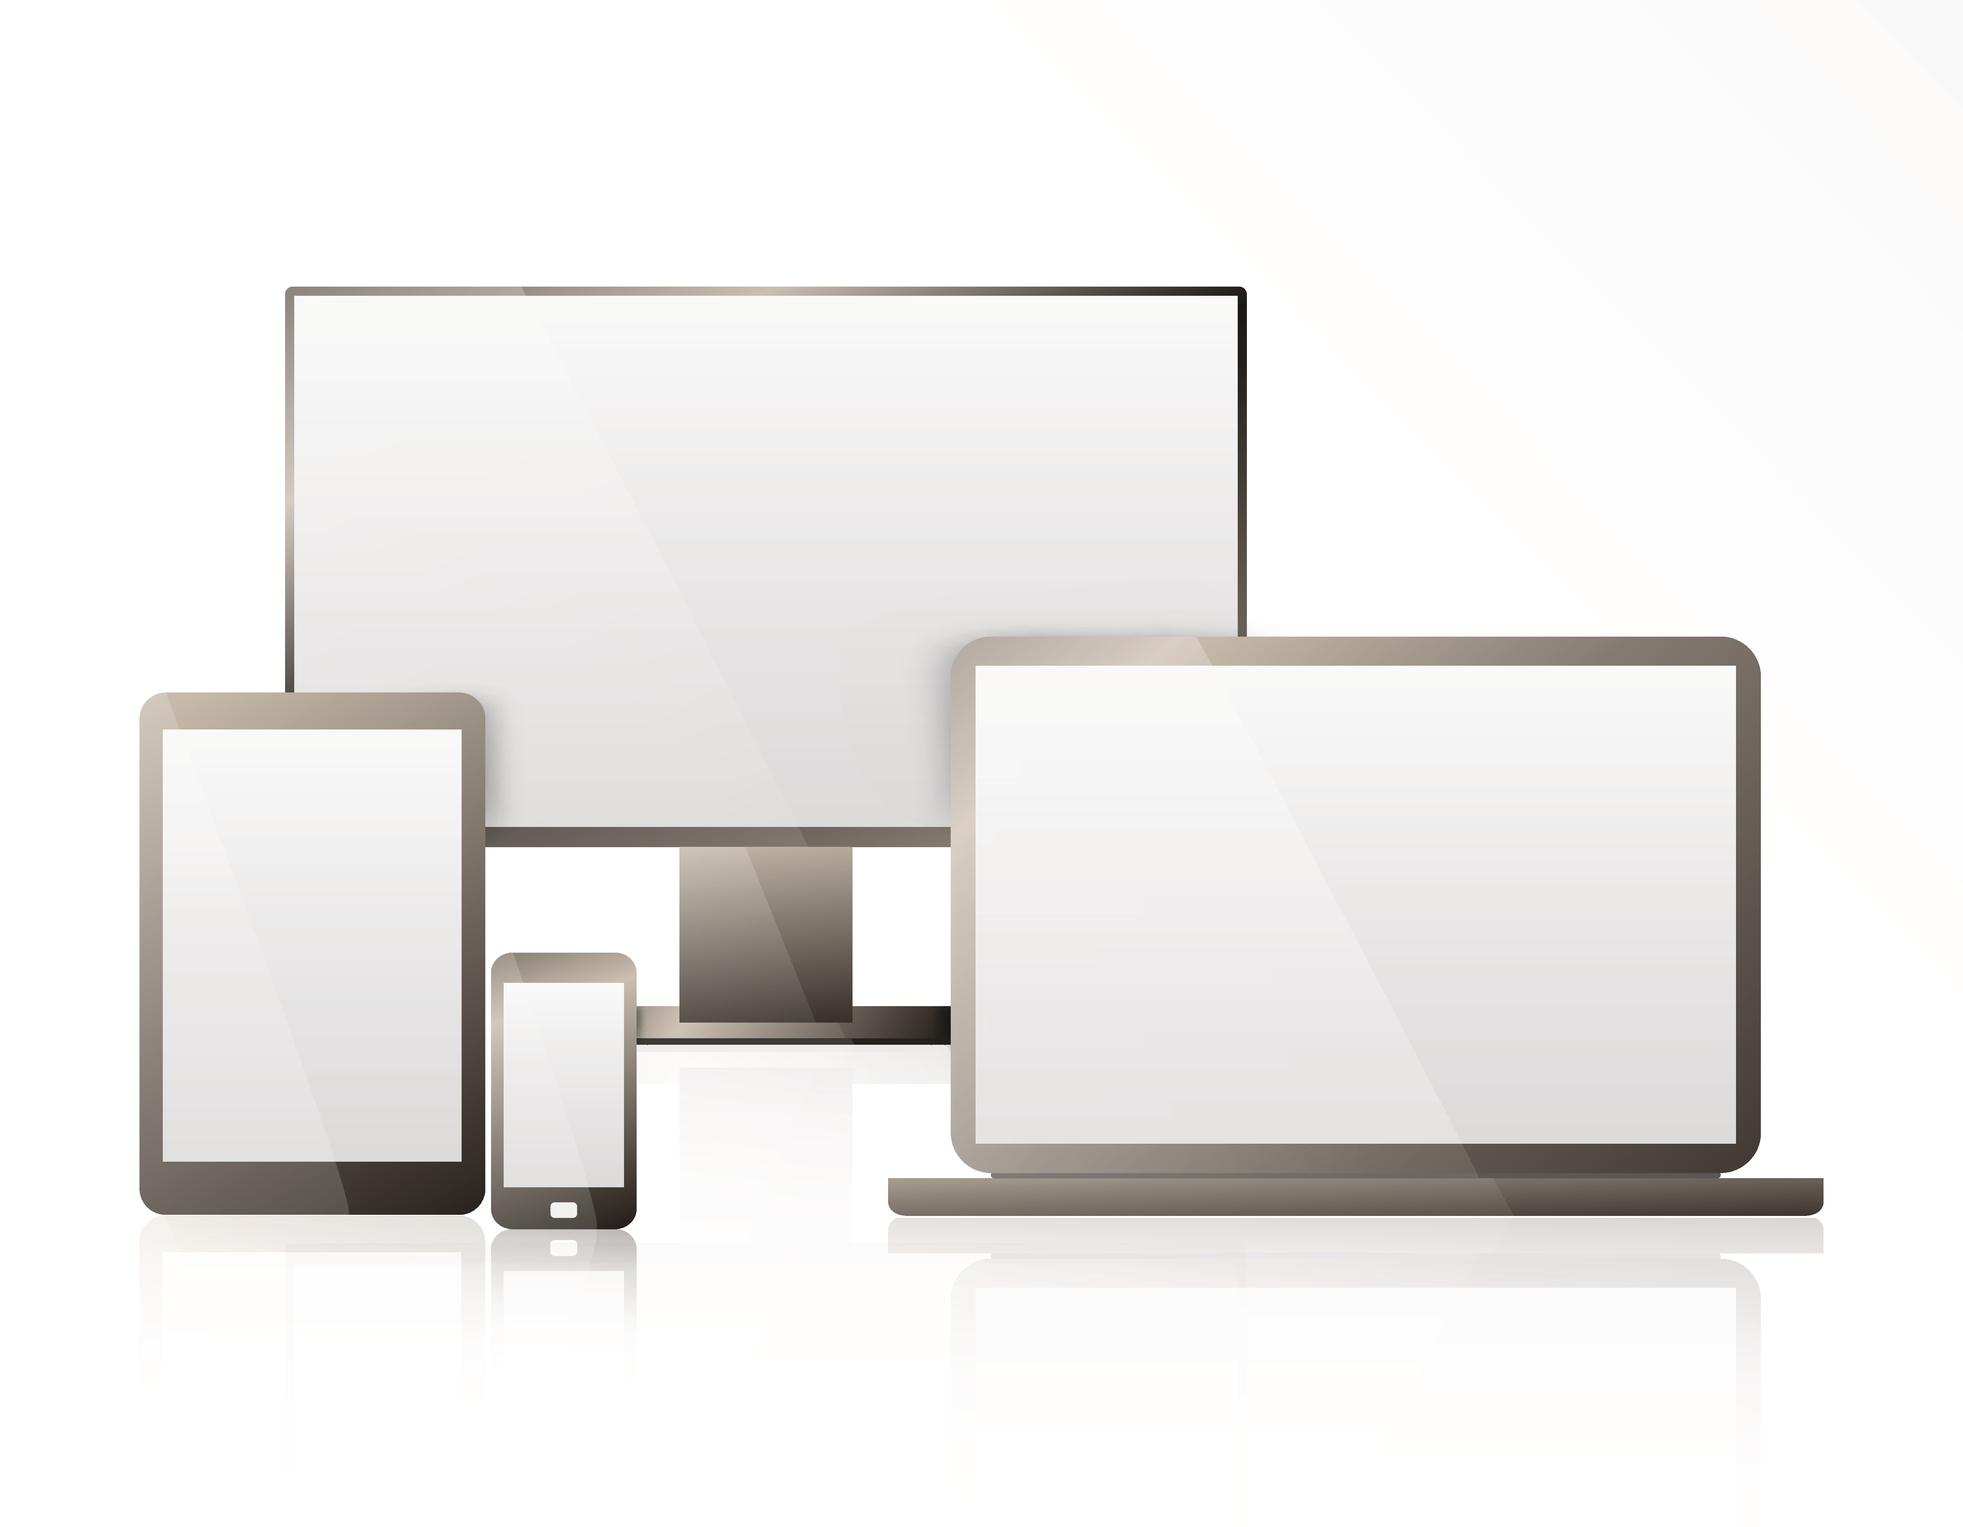 devices2.jpg